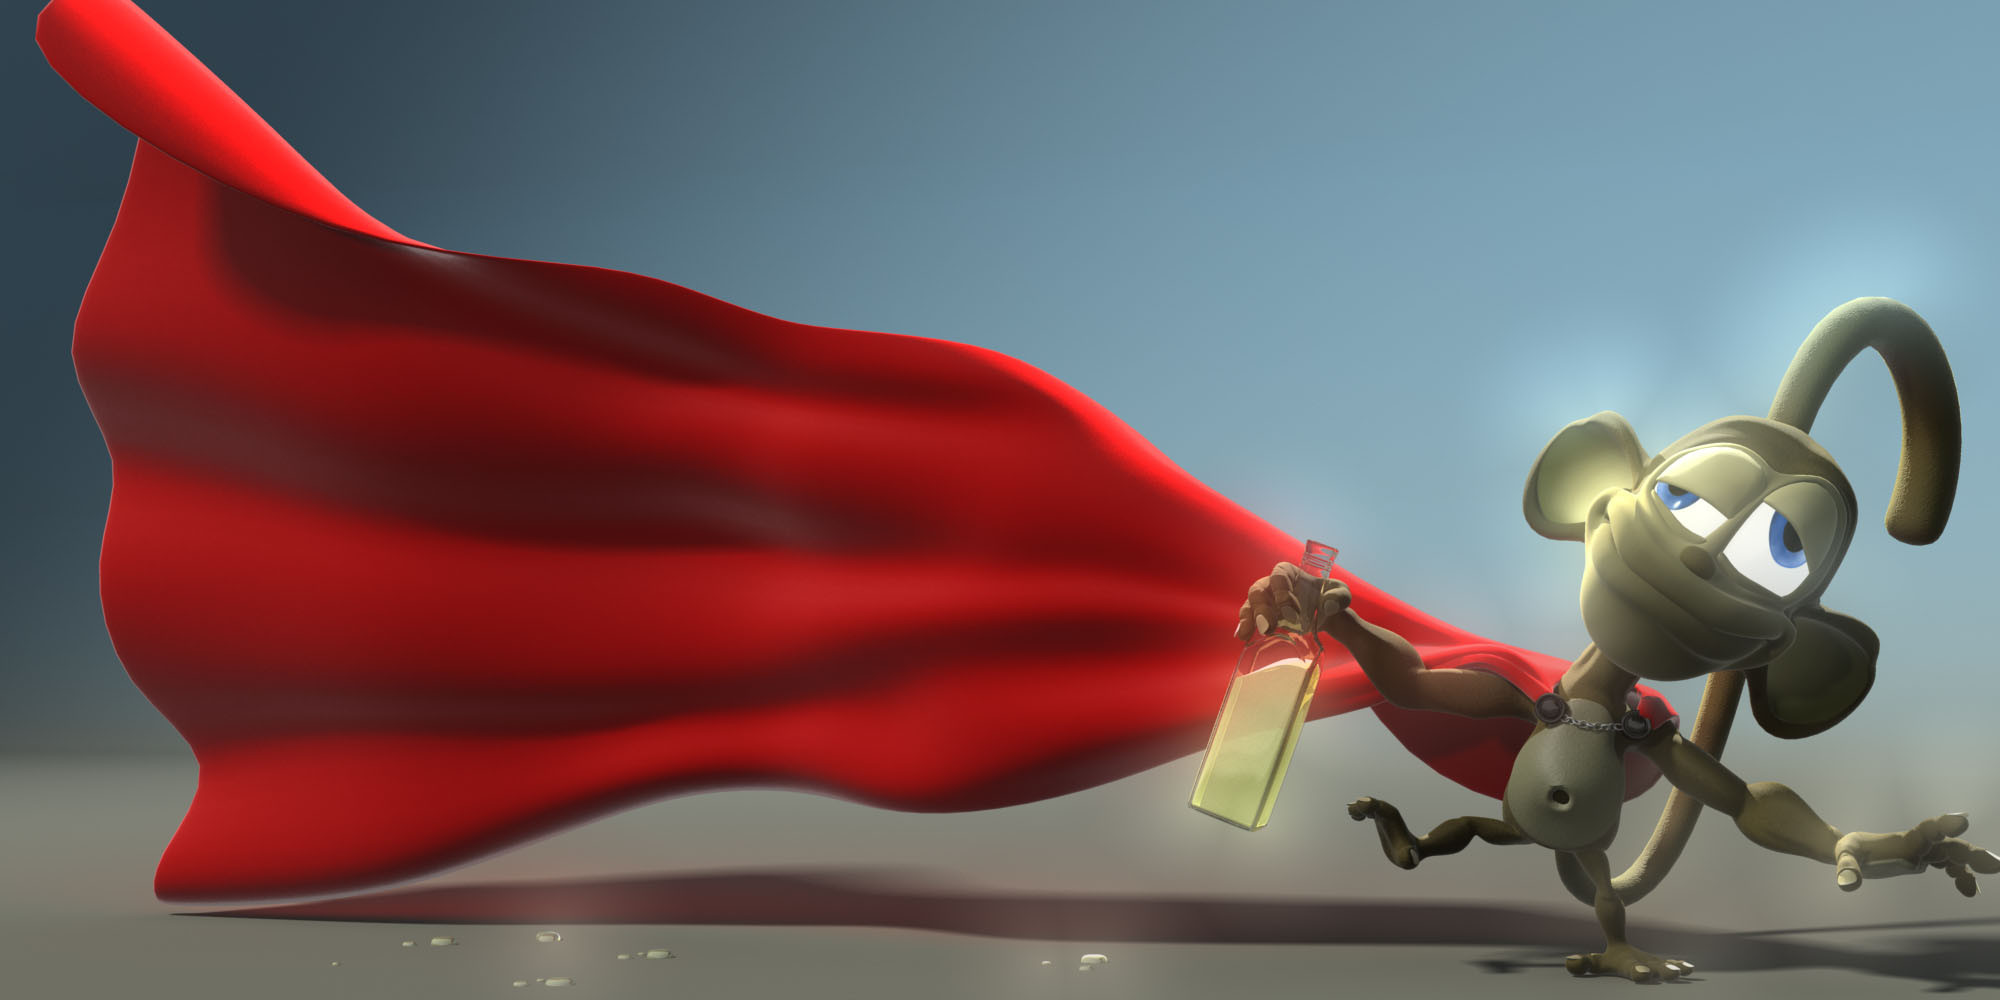 Somewhere there is a sober superhero without a cape